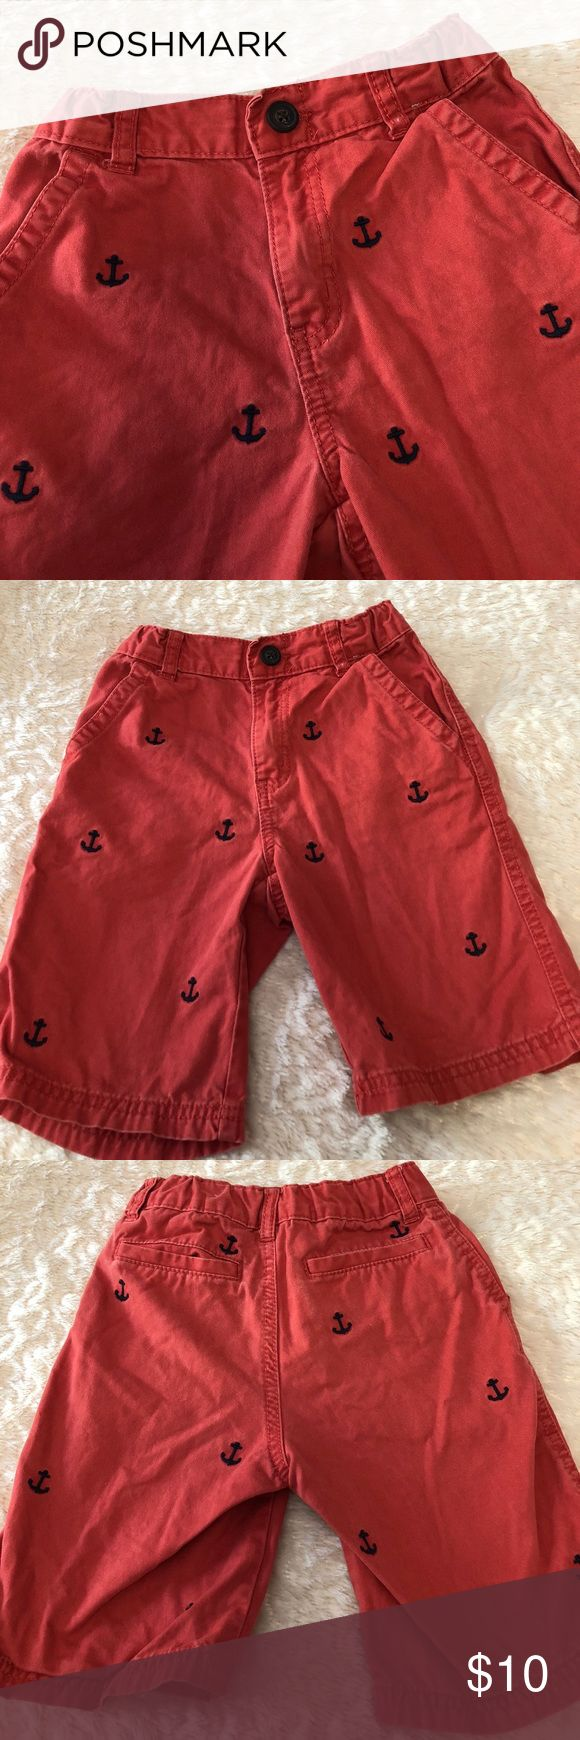 Gymboree Nautical Anchor Shorts 6 Preowned and clean. Has adjustable inside waistband Gymboree Bottoms Shorts